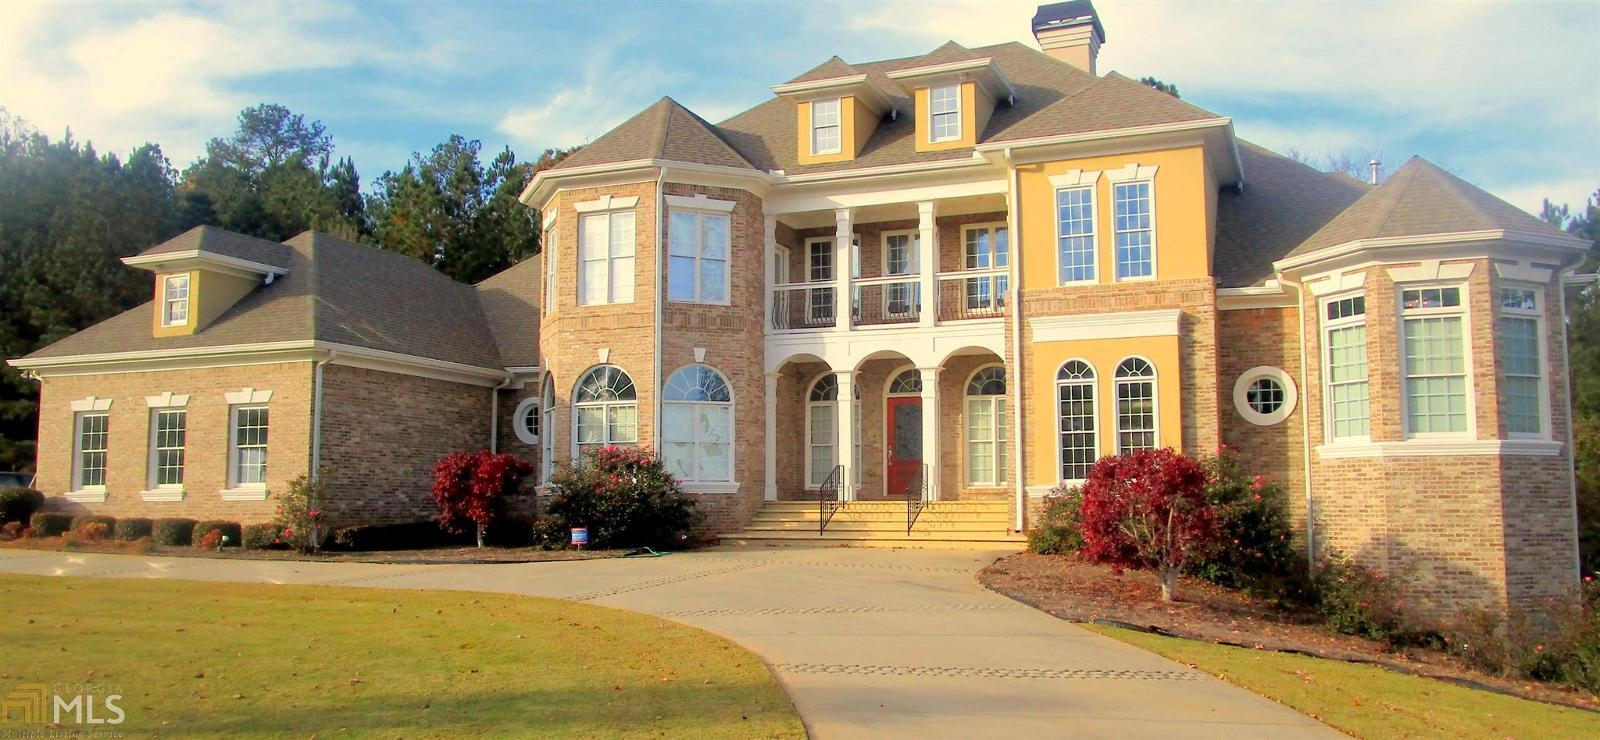 1101 moccasin trl loganville ga mls 8292136 ziprealty for Home builders in loganville ga